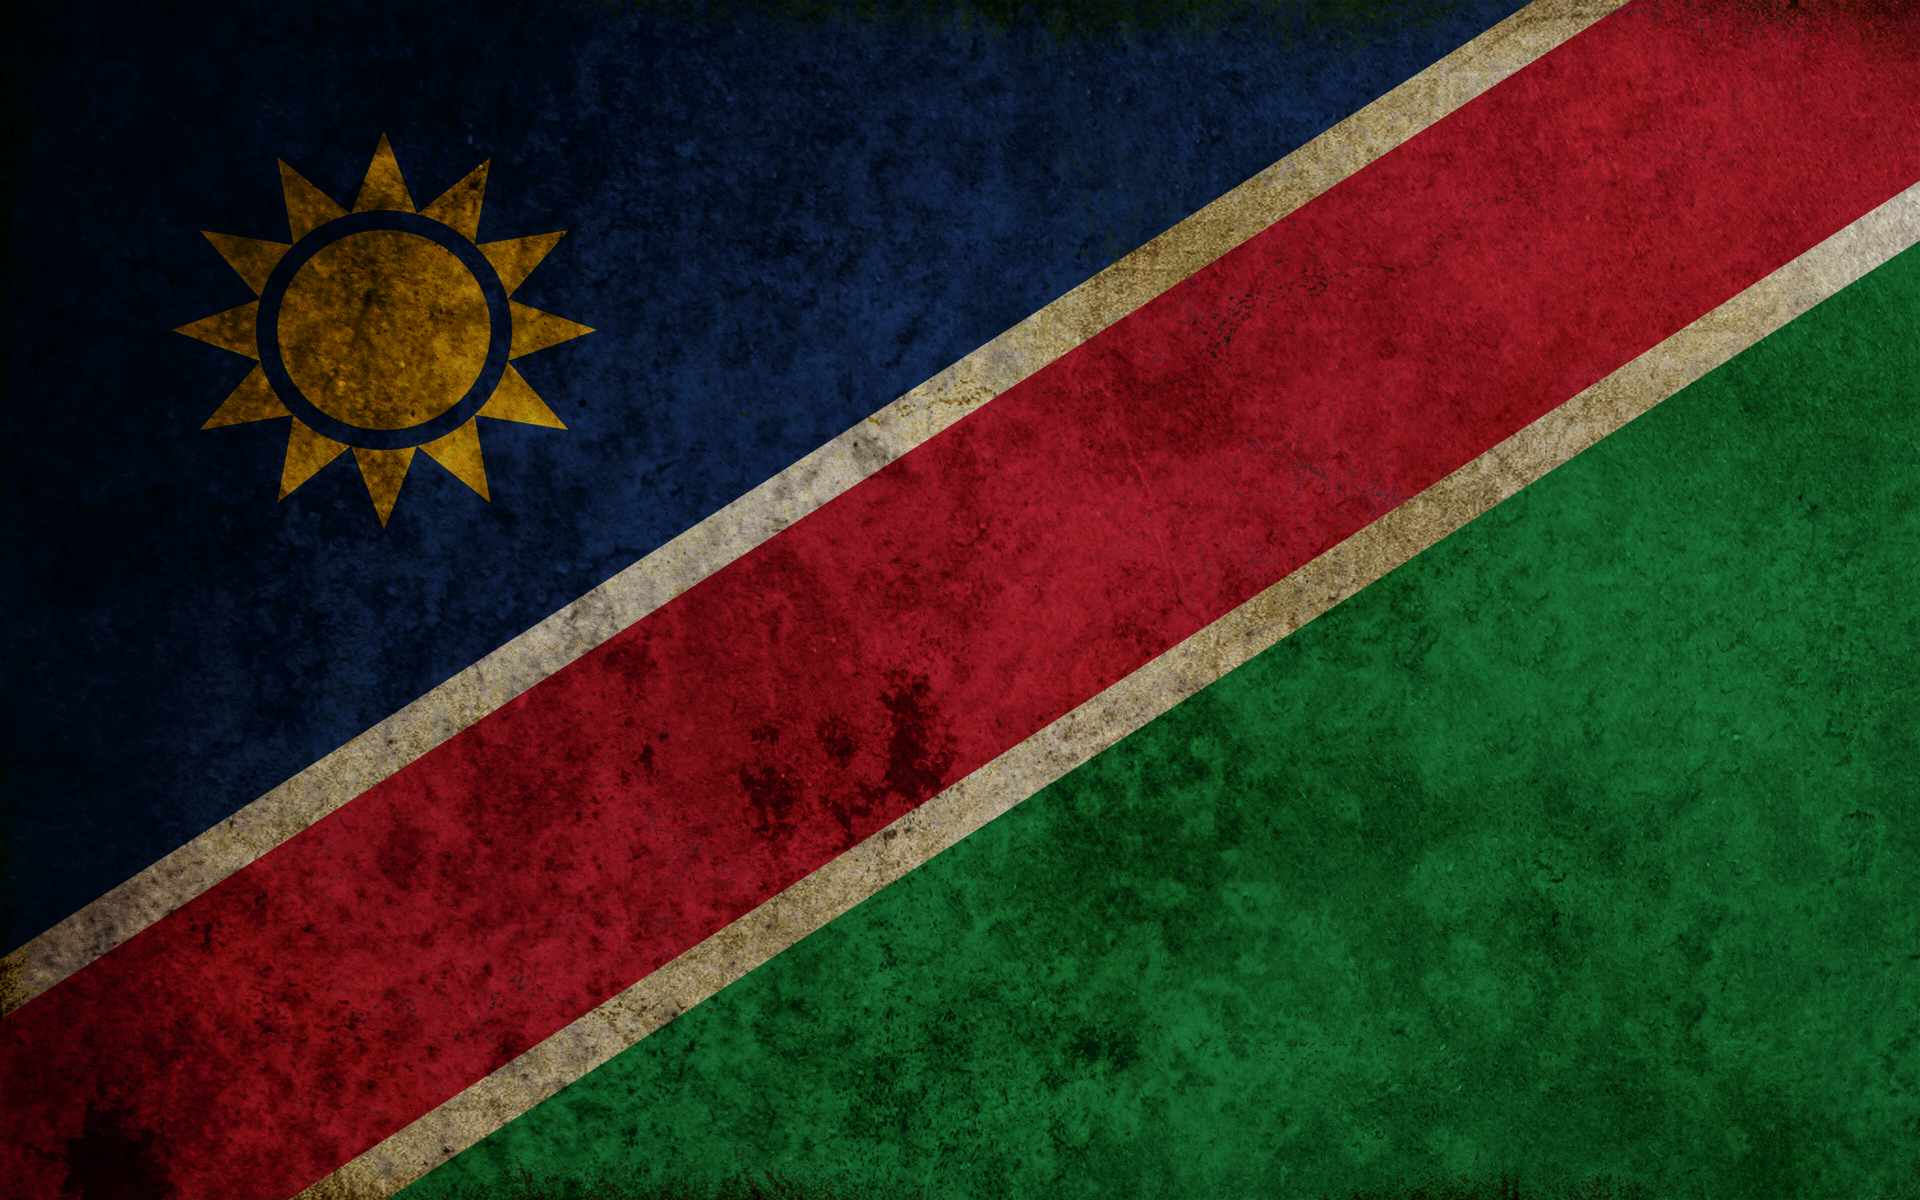 Flag Of Namibia HD Wallpaper Background Image 1920x1200 ID 1920x1200